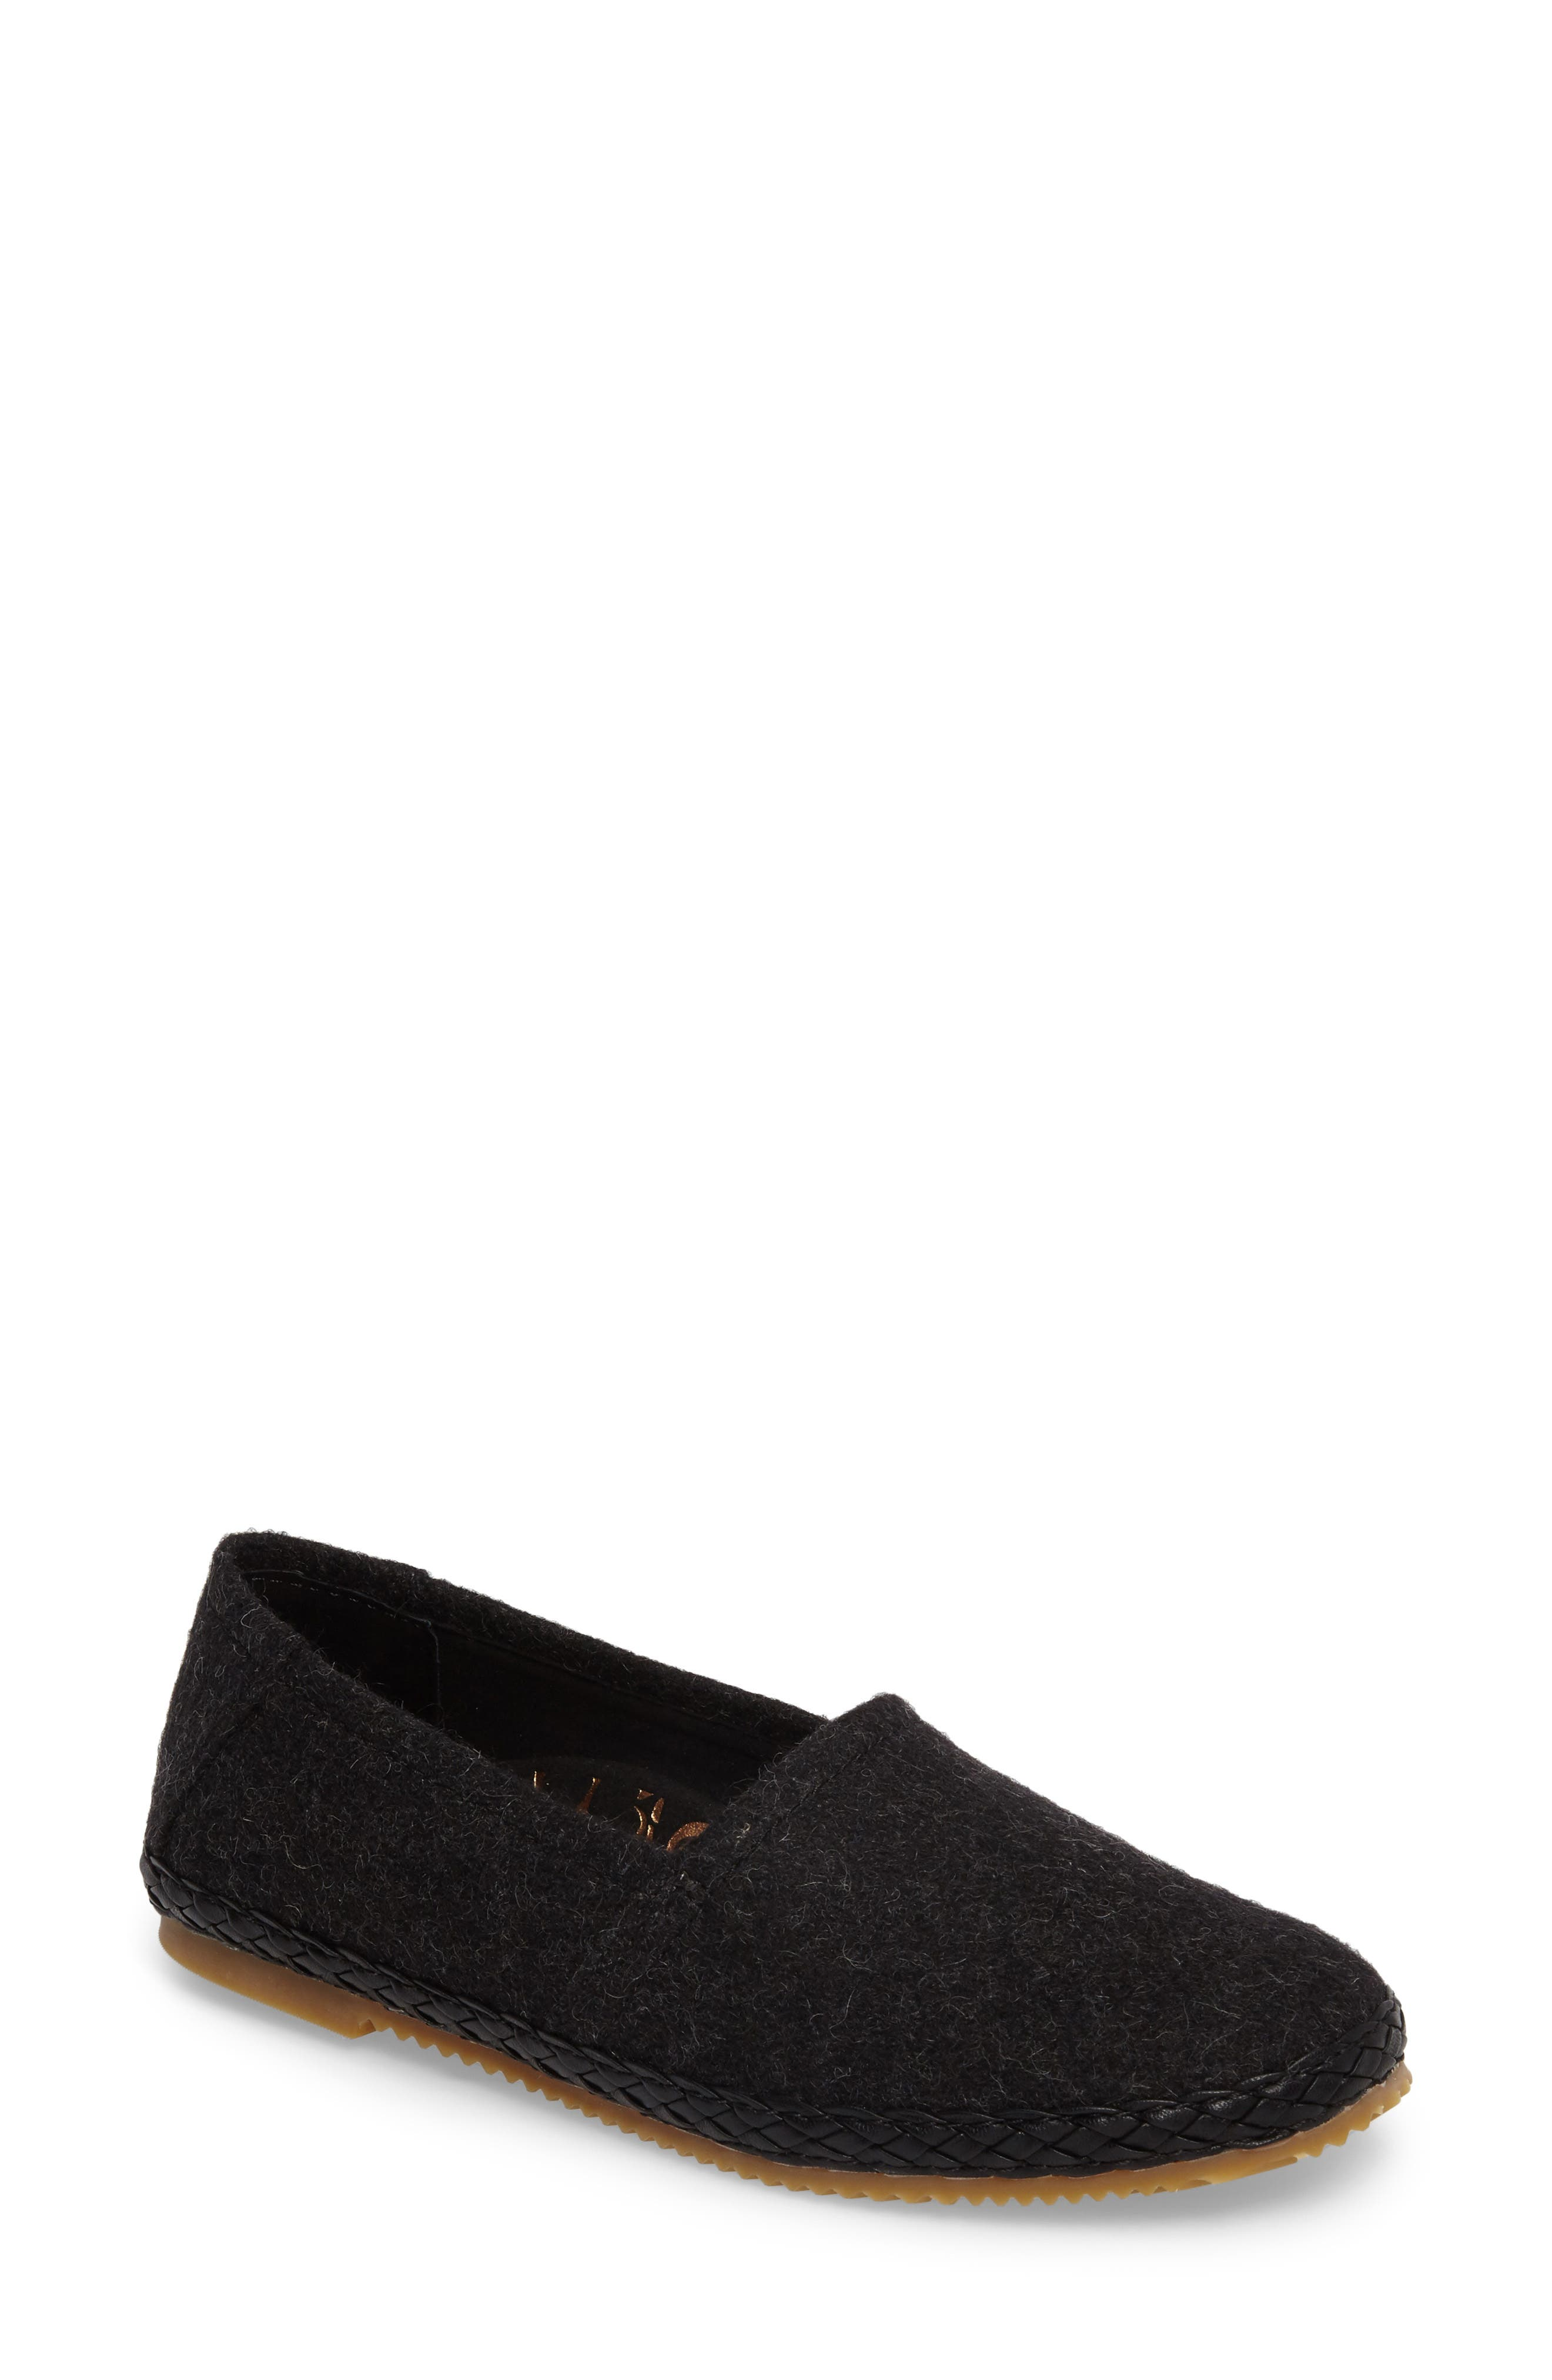 AETREX, Kylie Slip-On, Main thumbnail 1, color, BLACK FABRIC